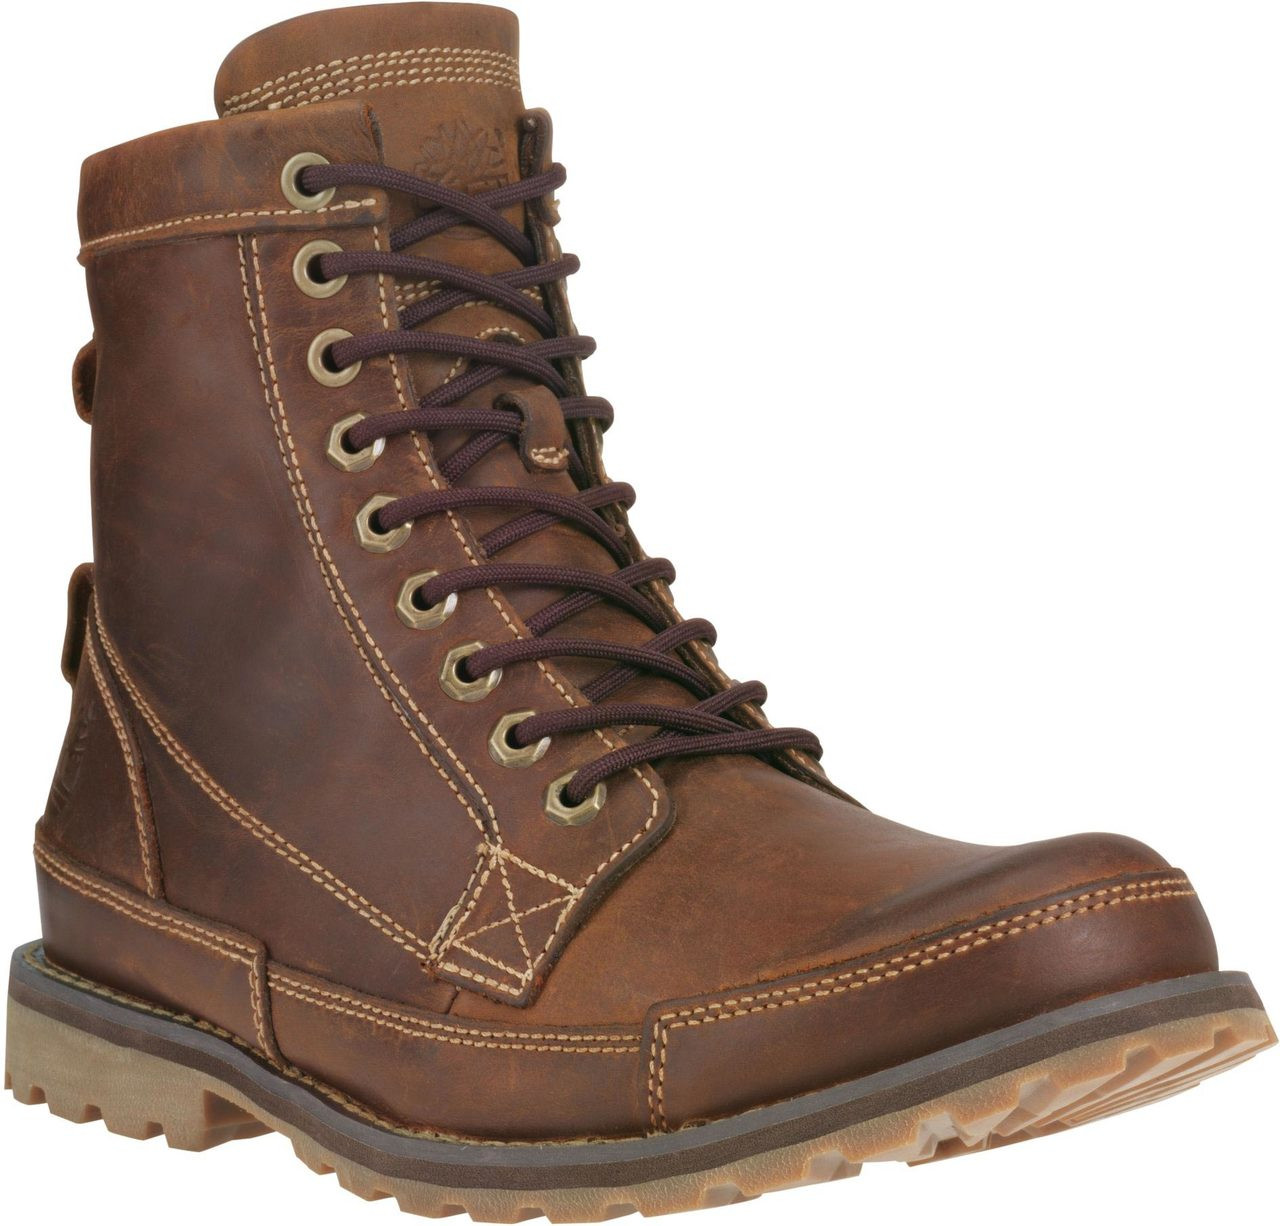 5d00fd66f685 ... Boots  Timberland Men s Earthkeepers Original Leather 6-Inch. Dark  Brown. Dark Brown  Dark Brown Oiled Nubuck  Red Brown Burnished